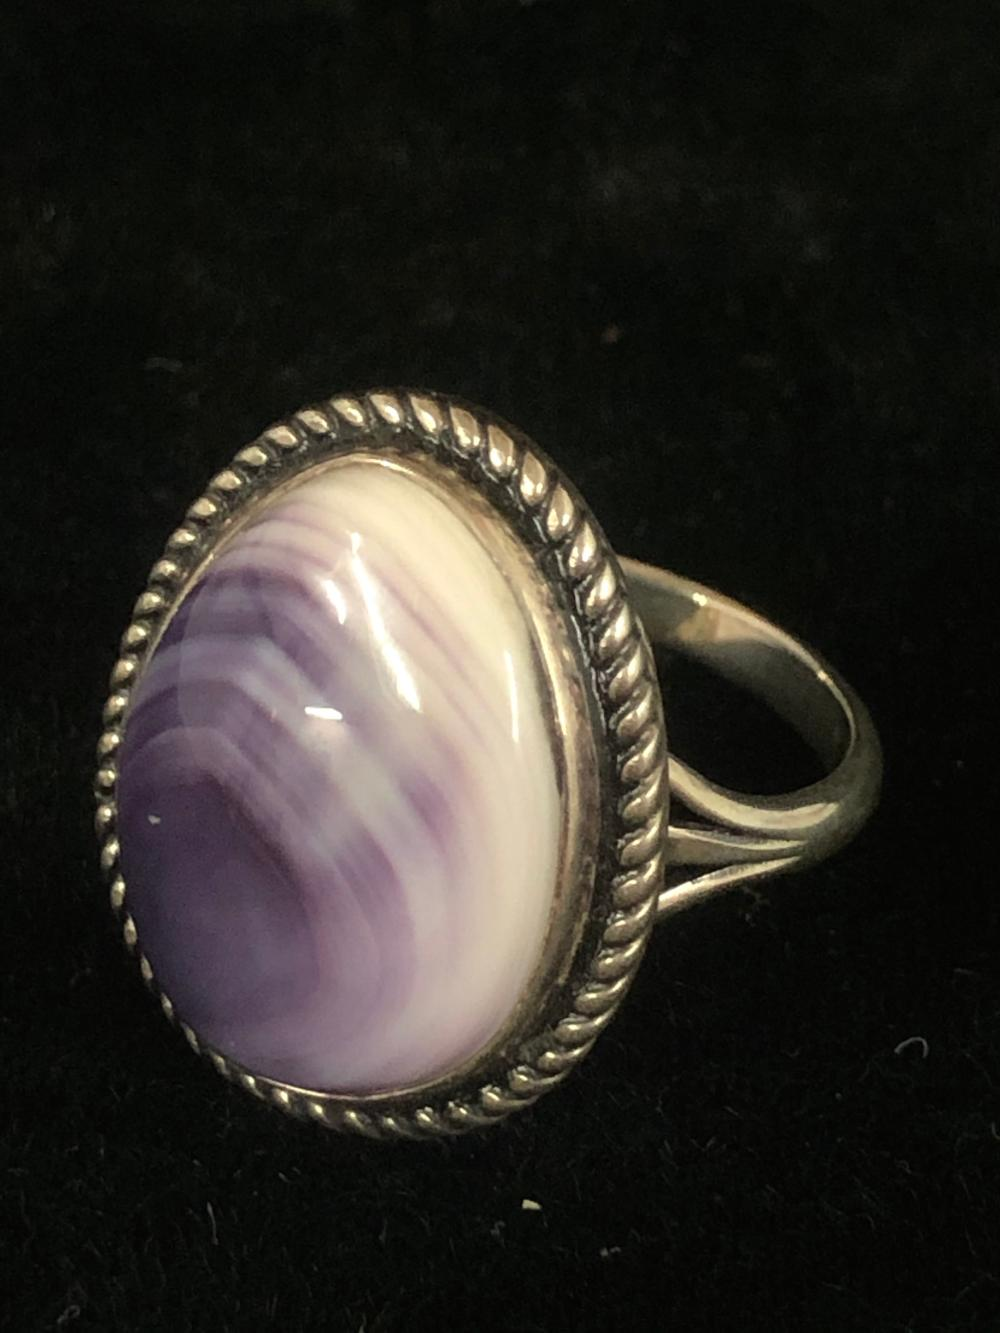 Wampum shell sterling silver ring